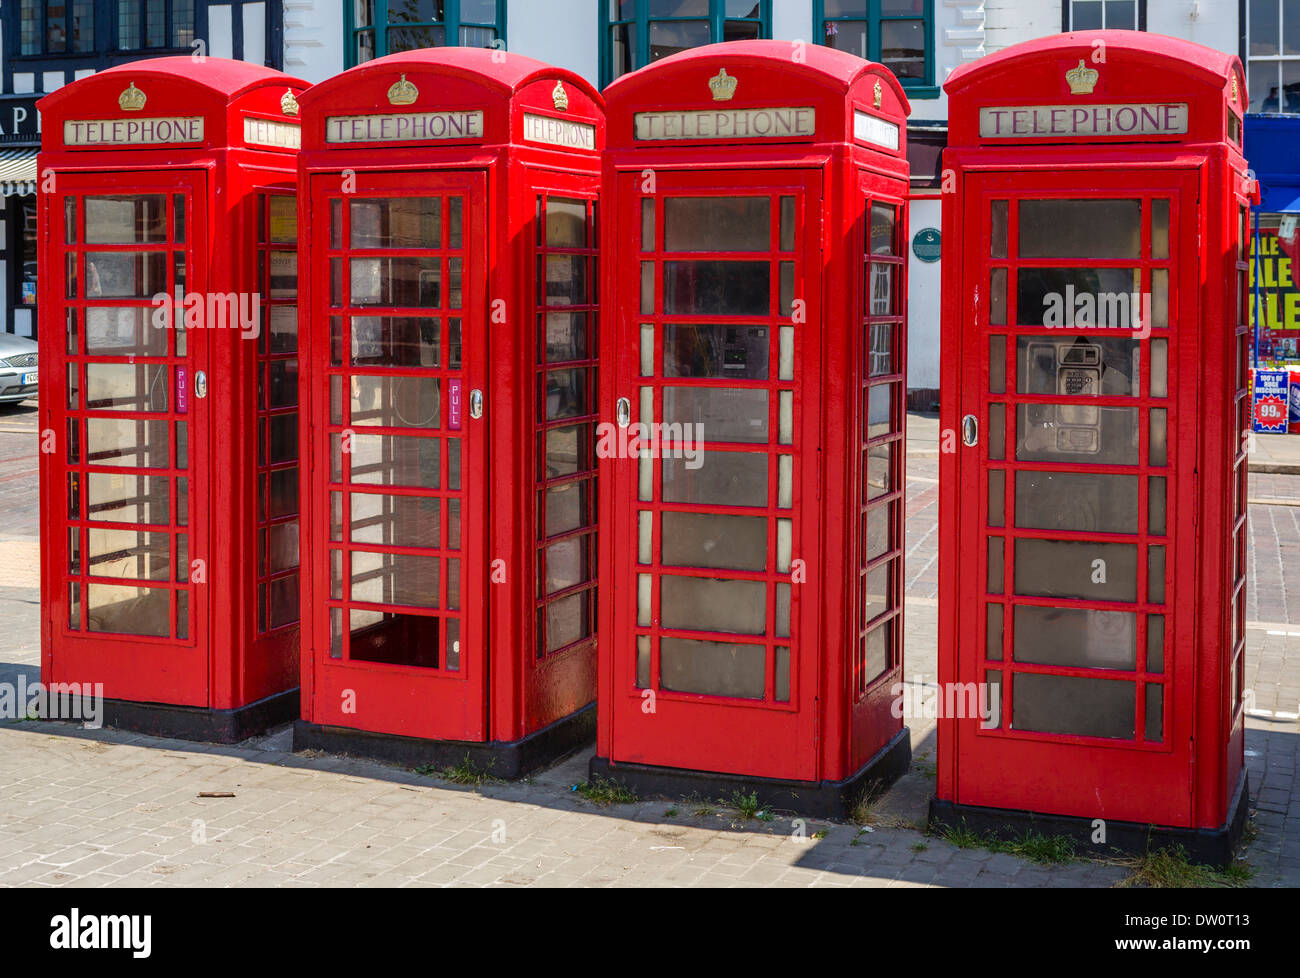 Row of traditional red telephone boxes in the historic old Market Place, Ripon, North Yorkshire, England, UK - Stock Image